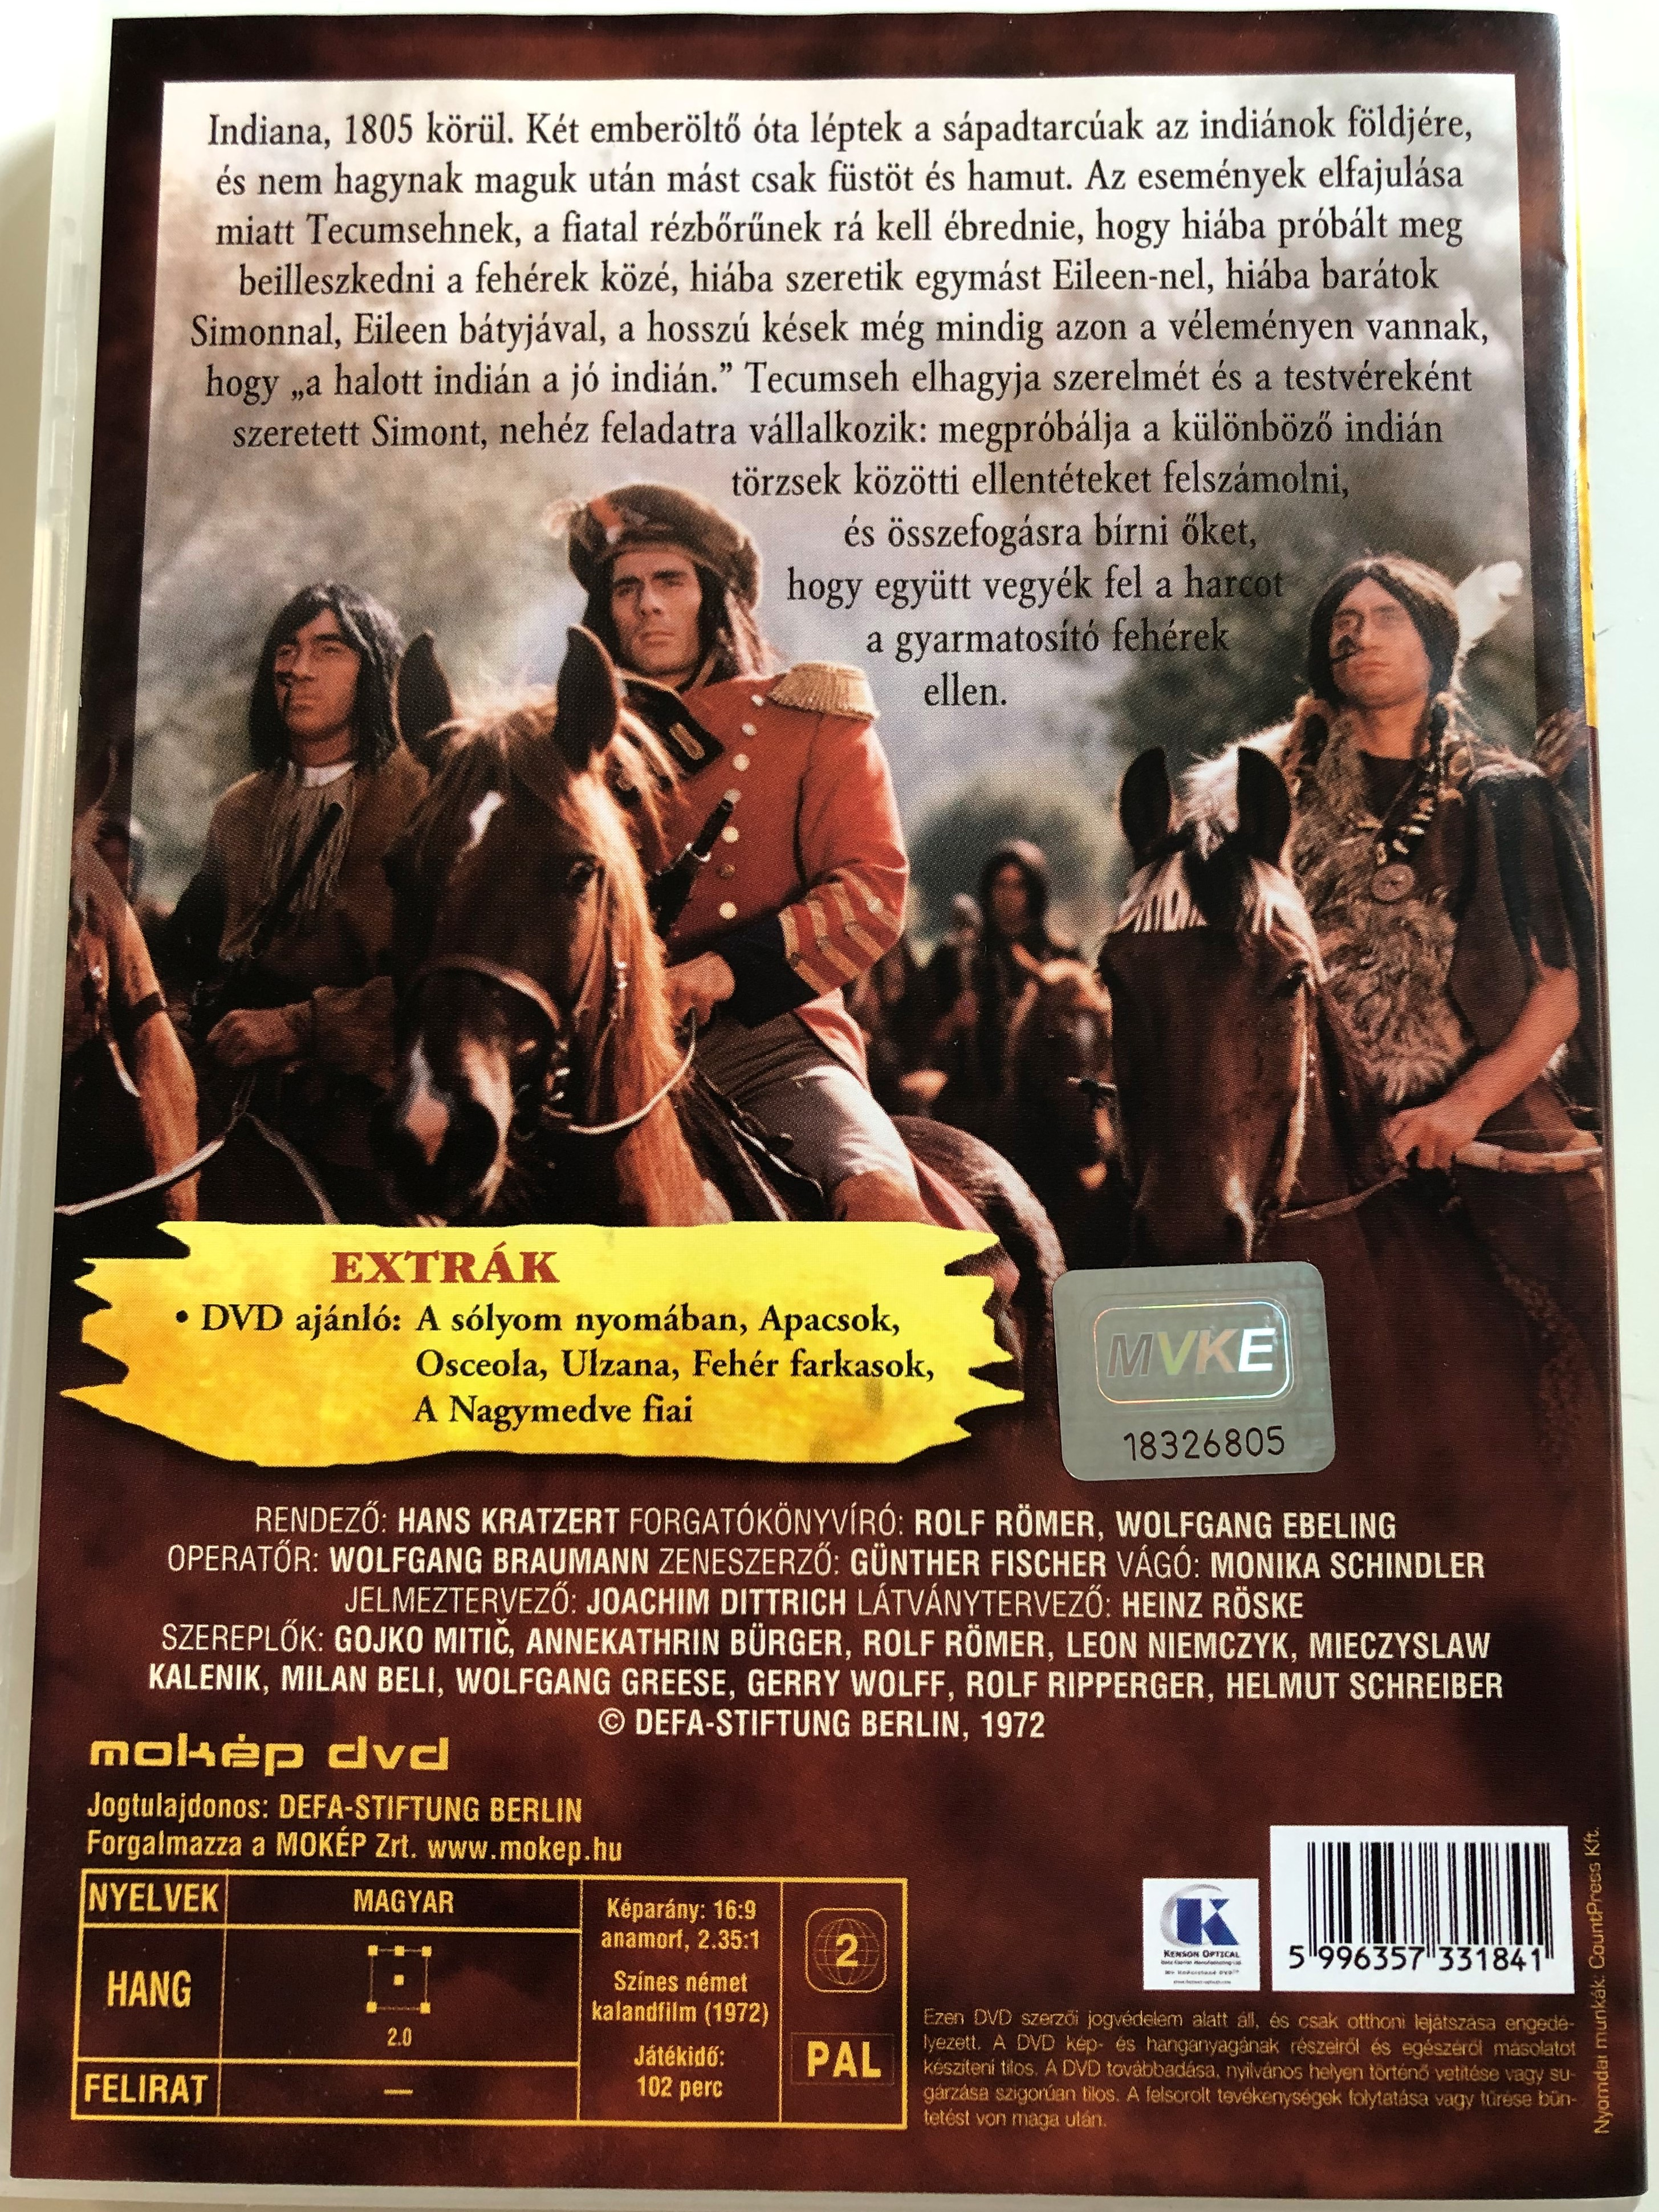 tecumseh-dvd-1972-directed-by-hans-kratzert-2.jpg